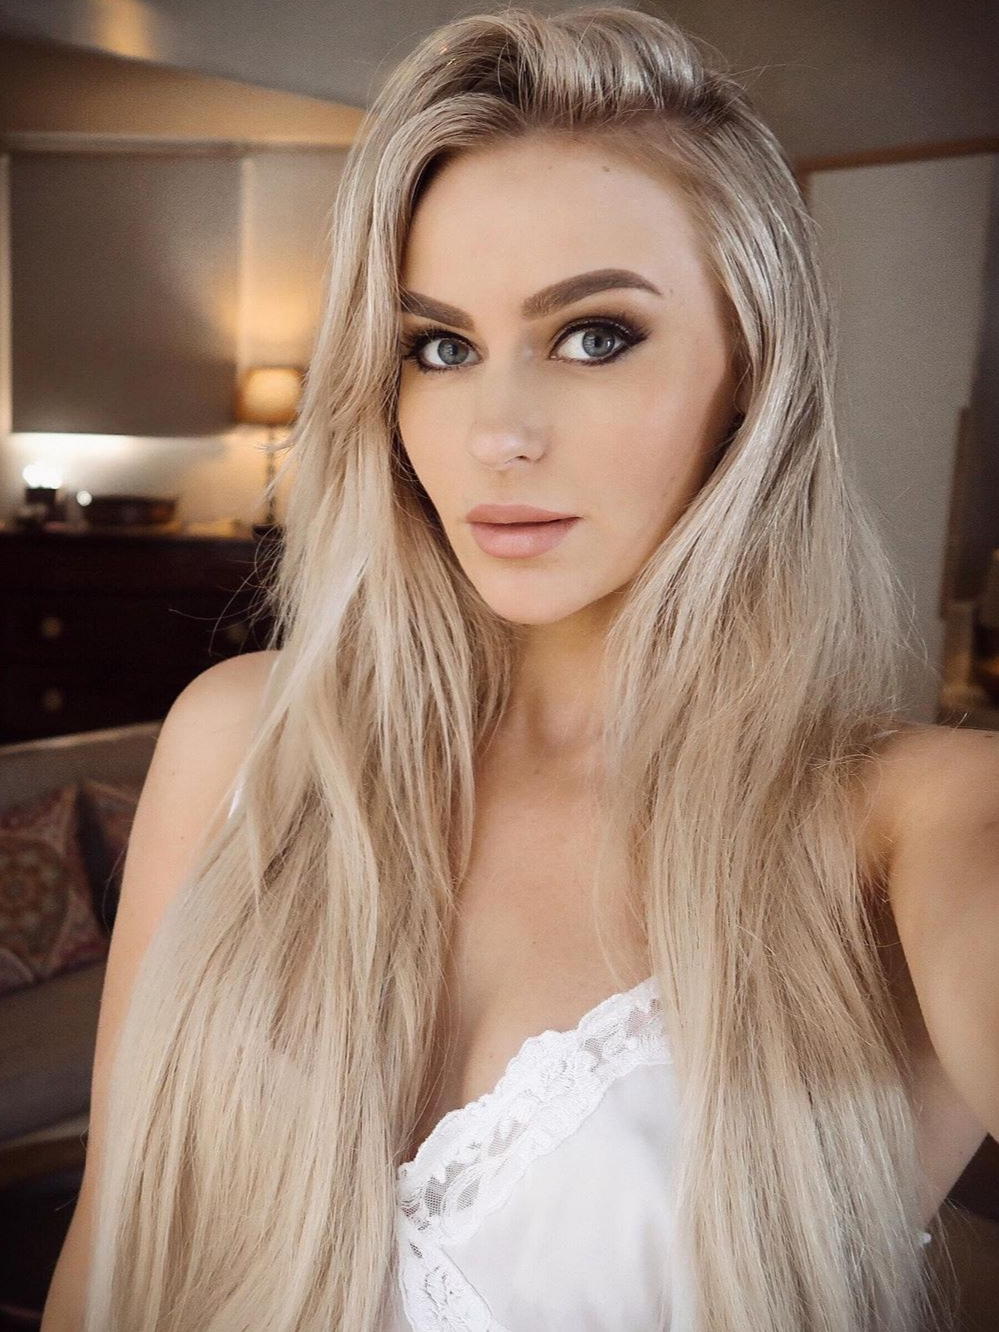 Anna Nystrom Biography, lifestyle sucess story and unknown fact